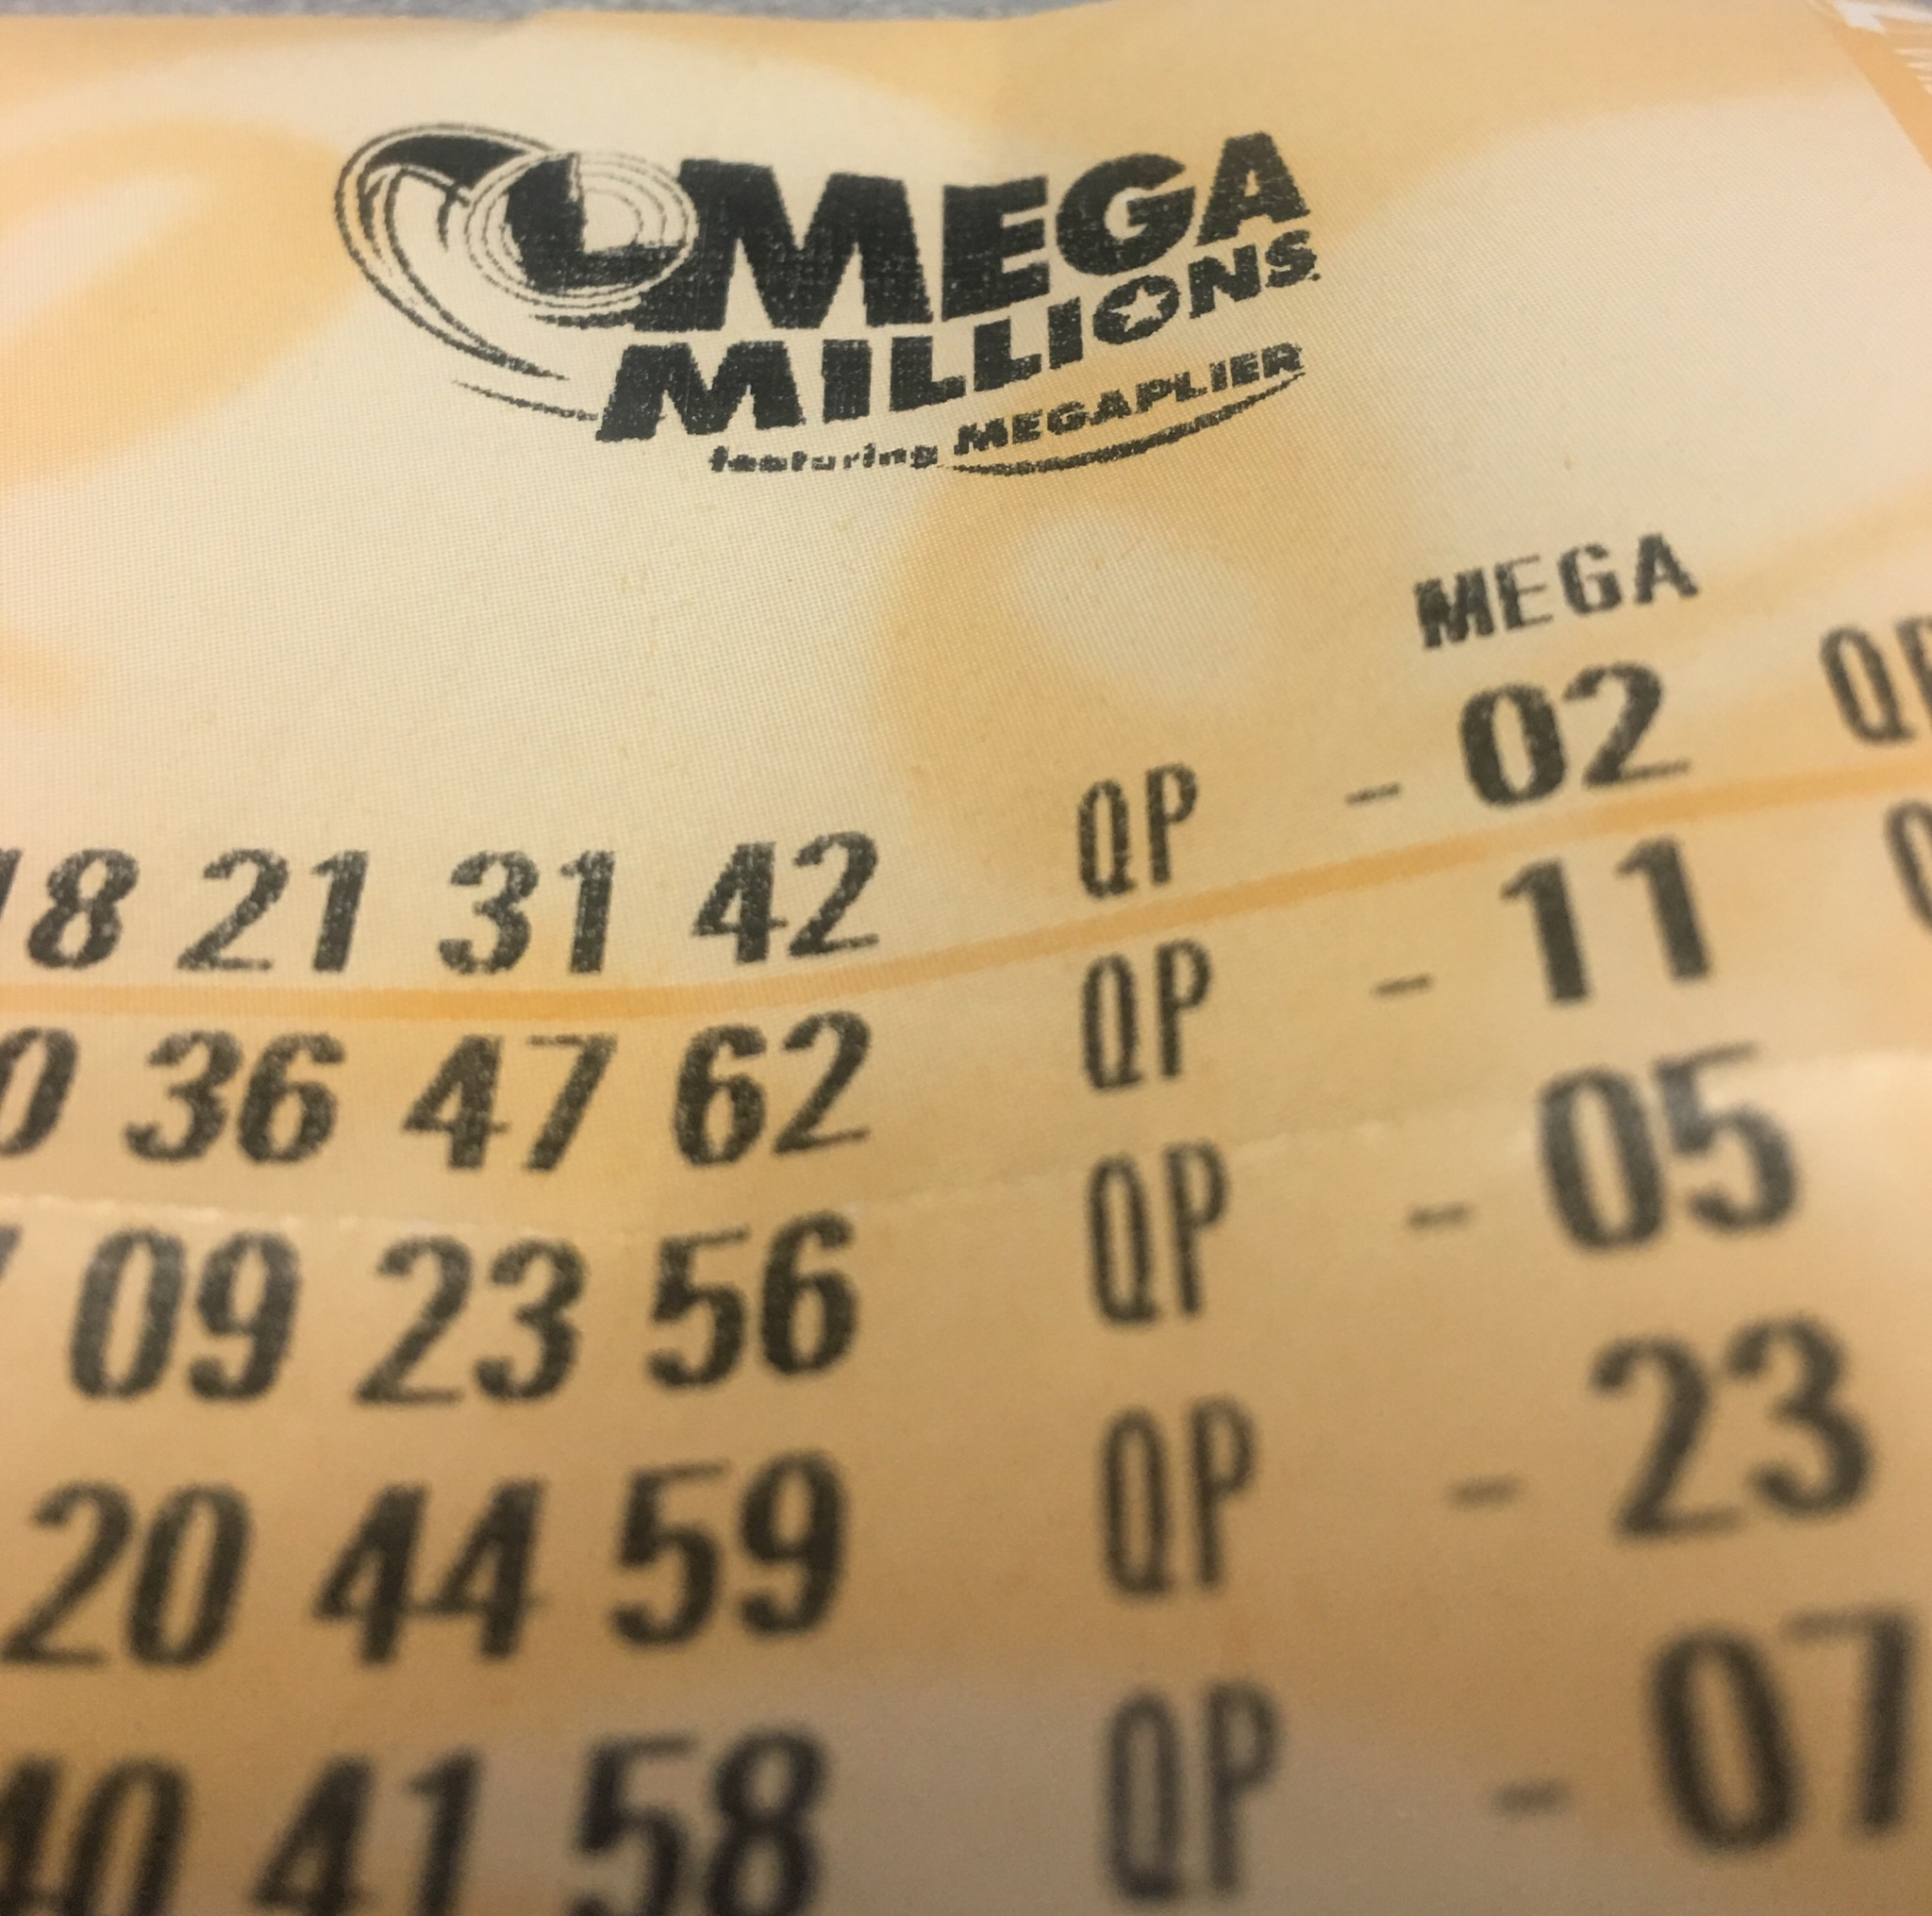 Winning Mega Millions Ticket was Sold, According to Lottery Office